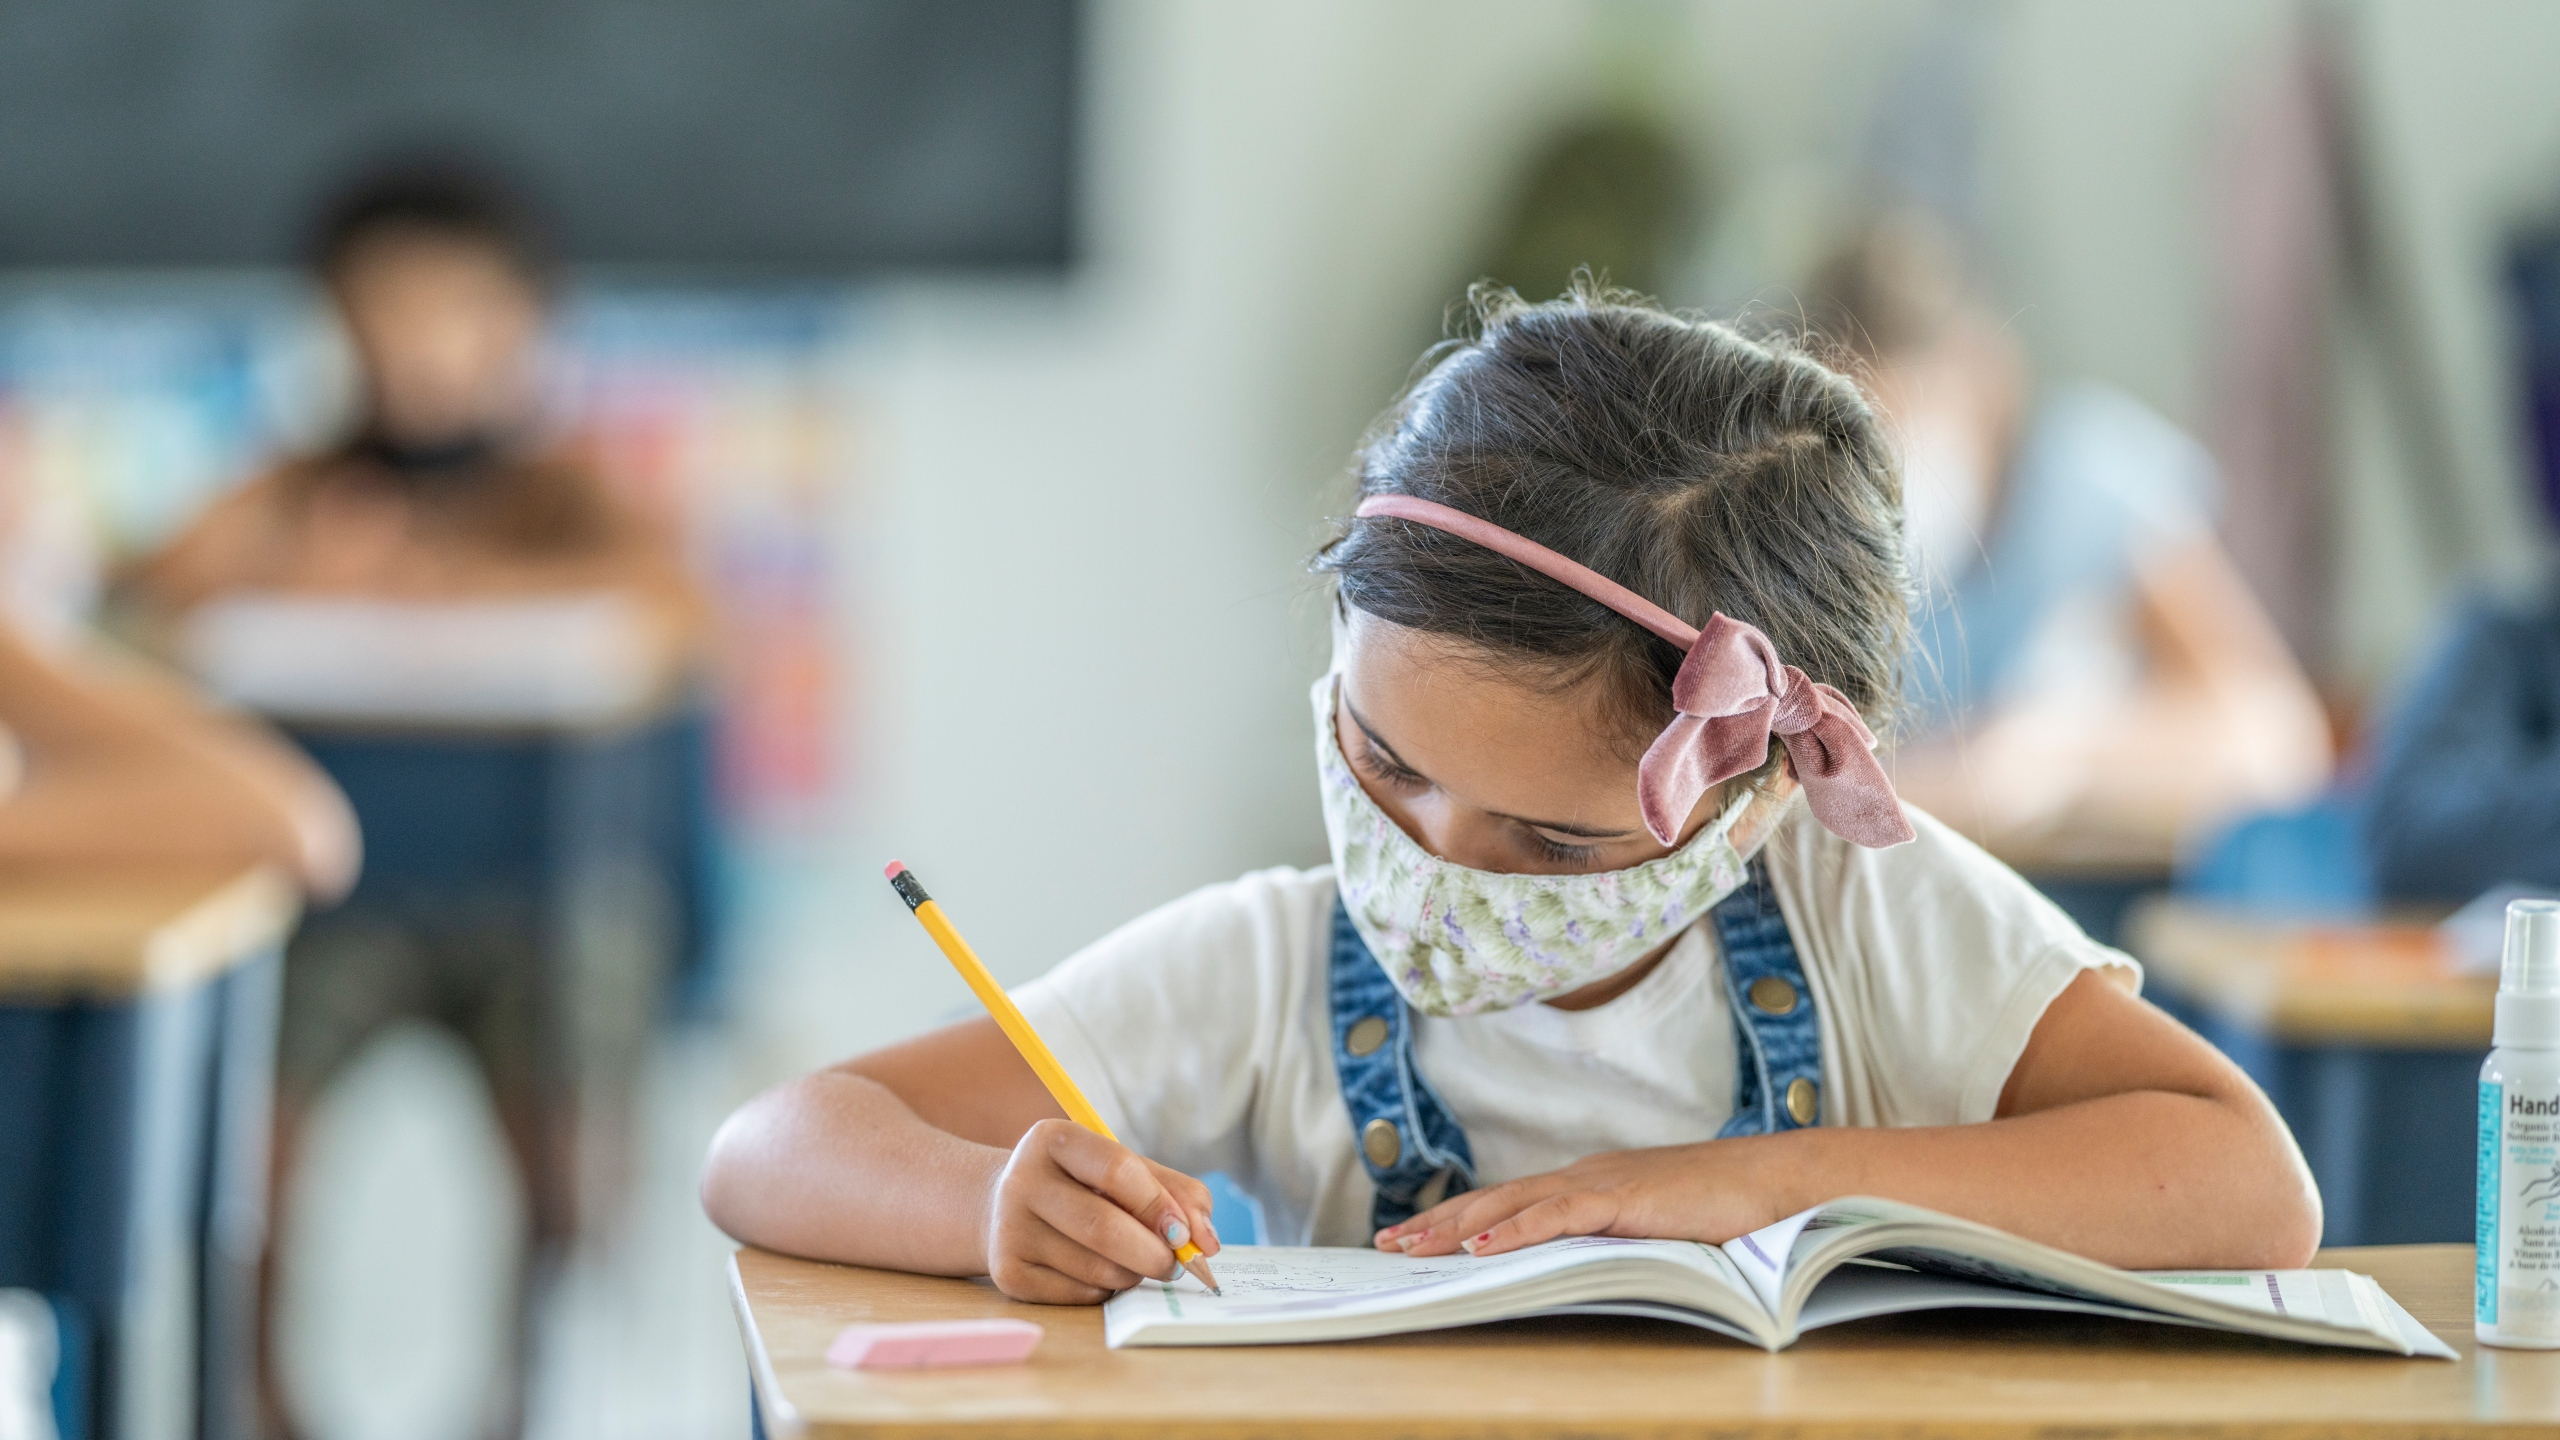 This undated file photo shows a student working in a classroom. (Getty Images)